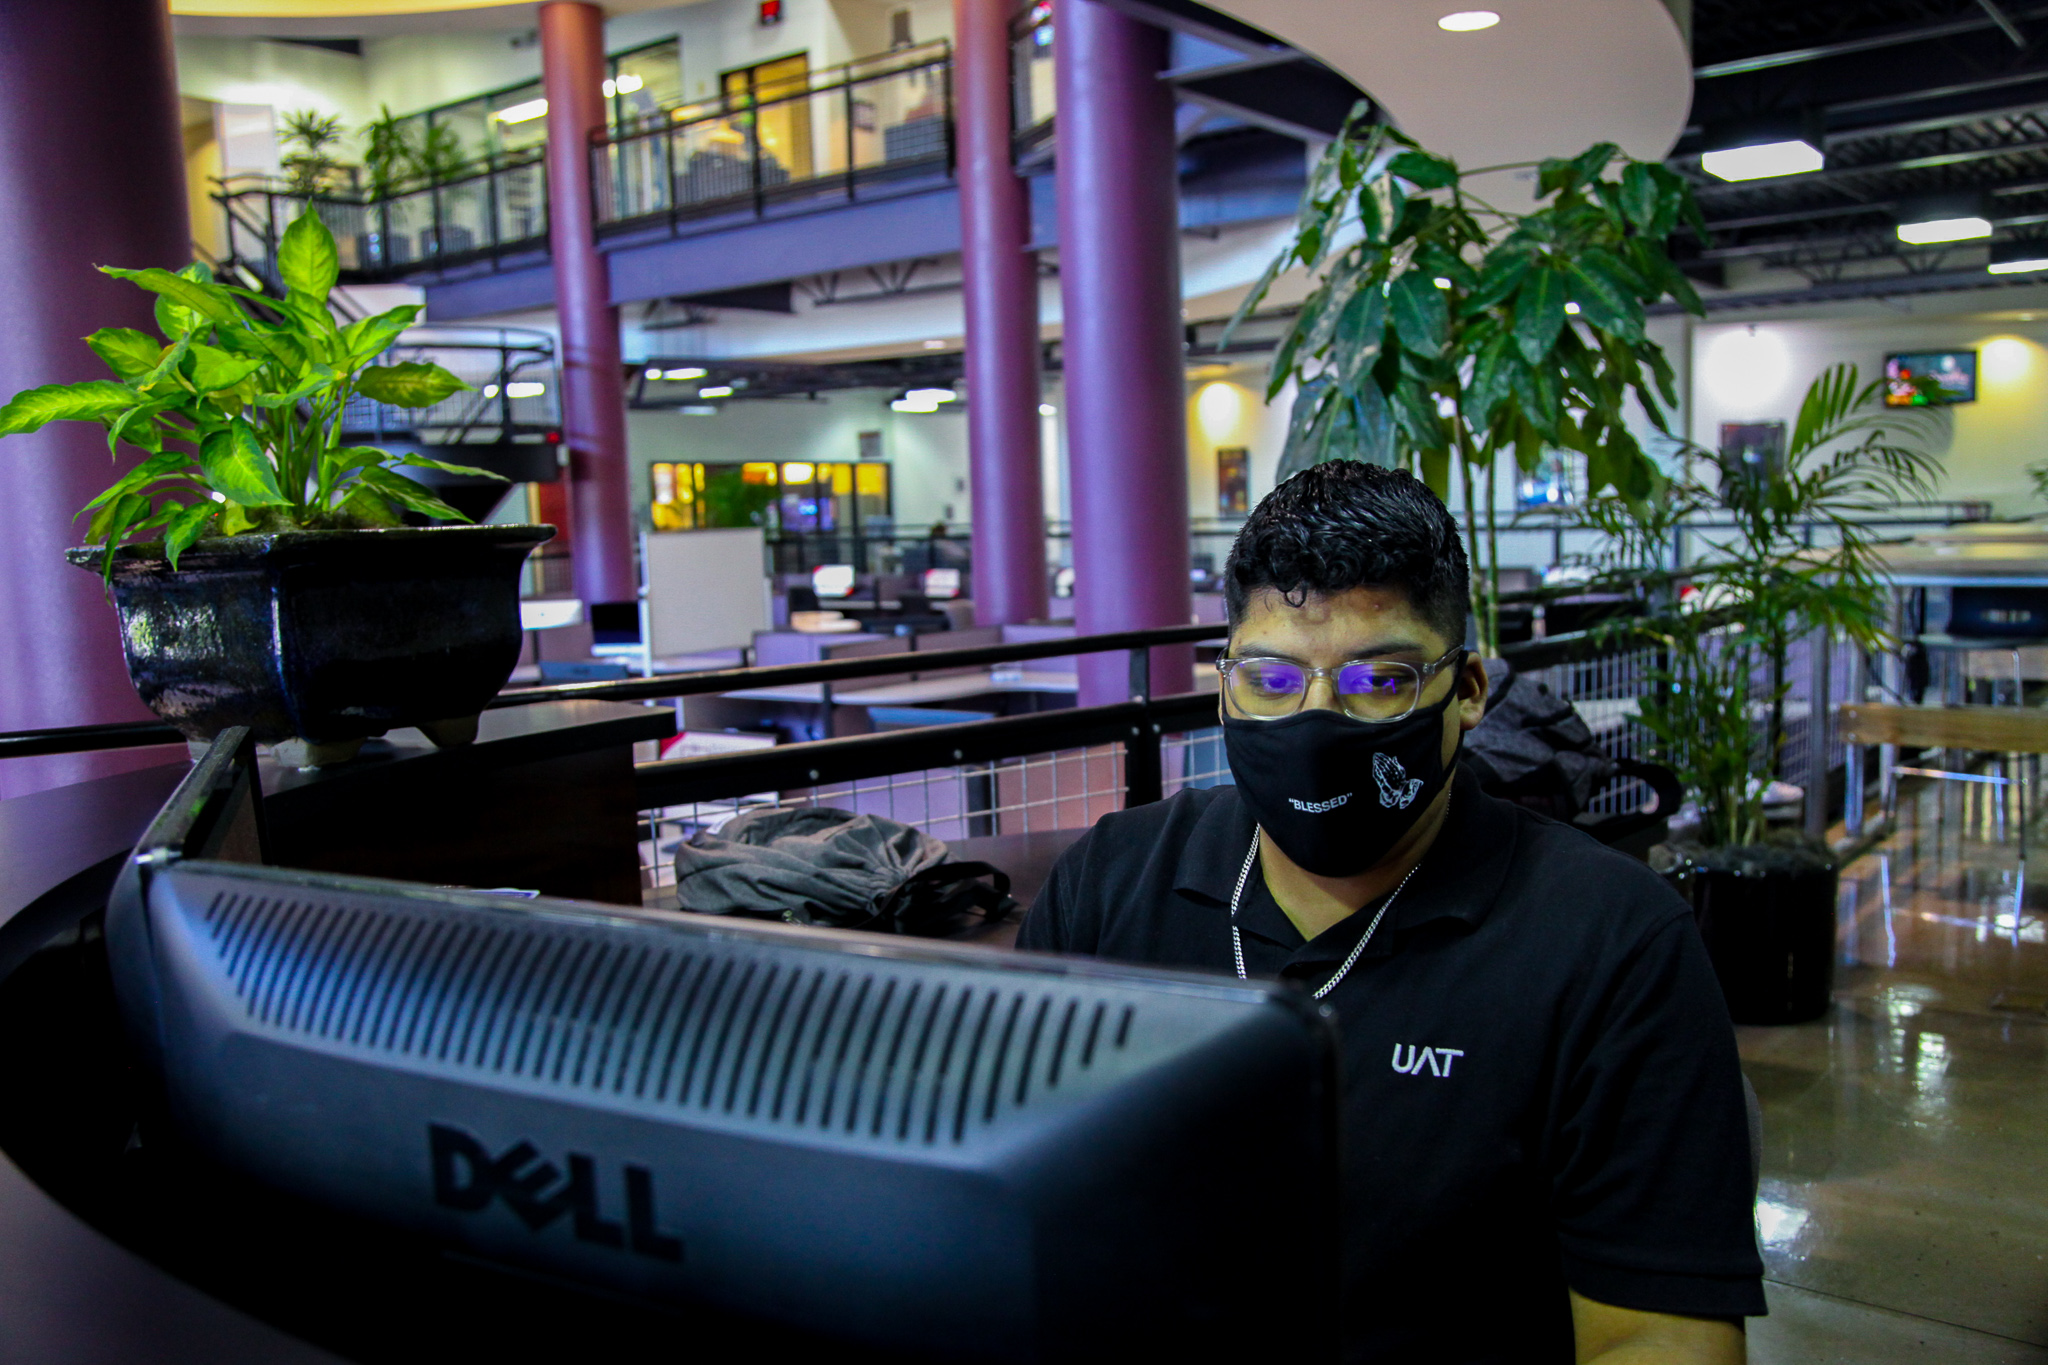 cyber security student at University of Advancing Technology